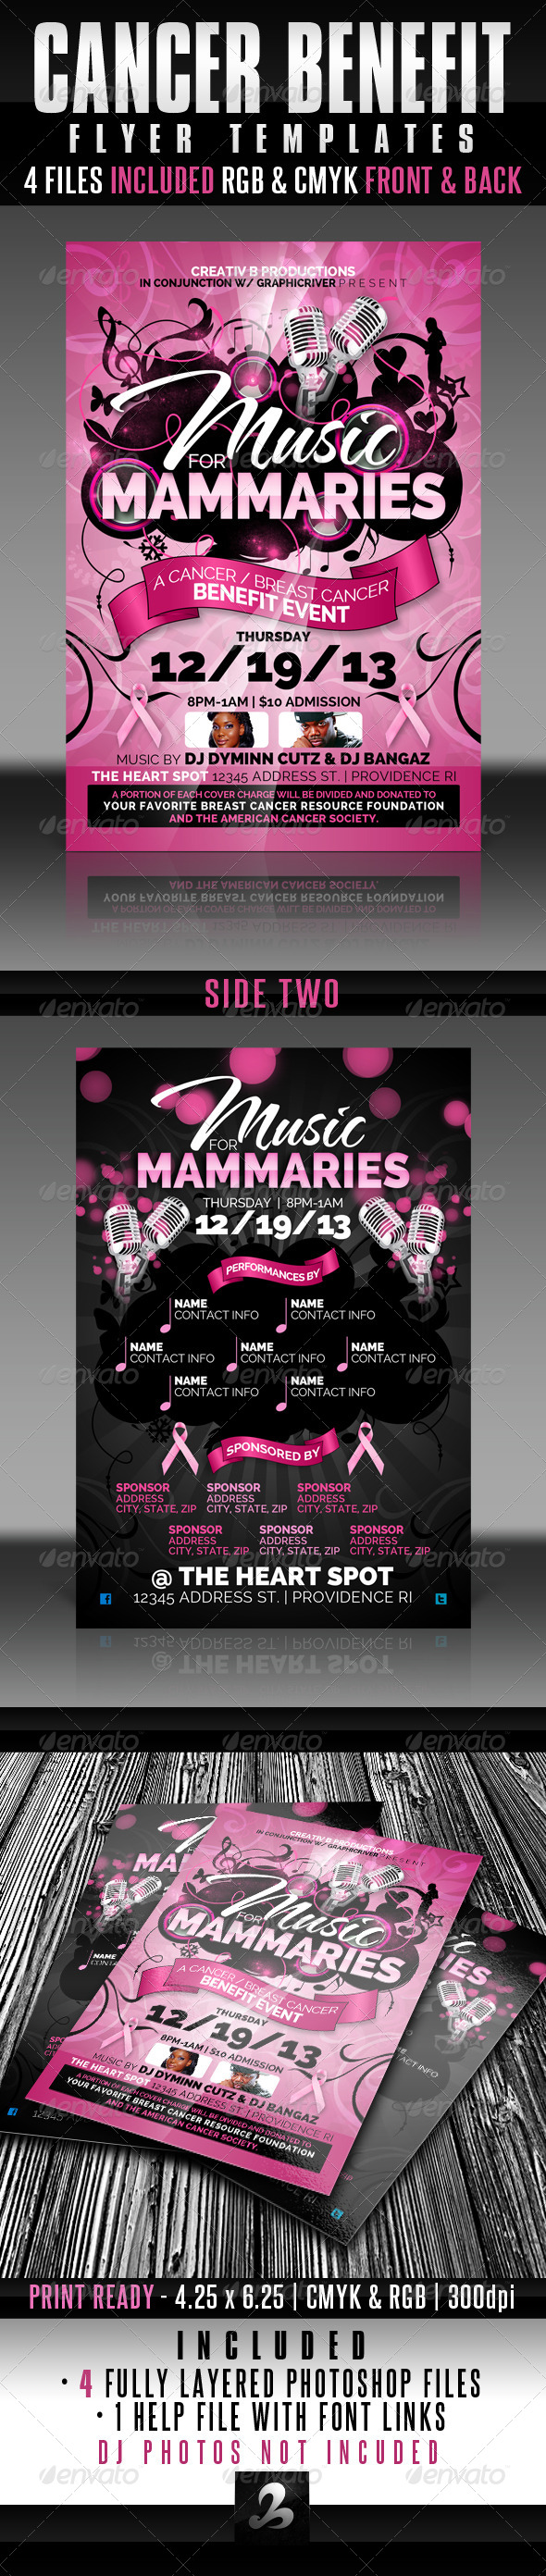 benefit softball tour nt flyer com graphicriver cancer benefit flyer templates 6333742